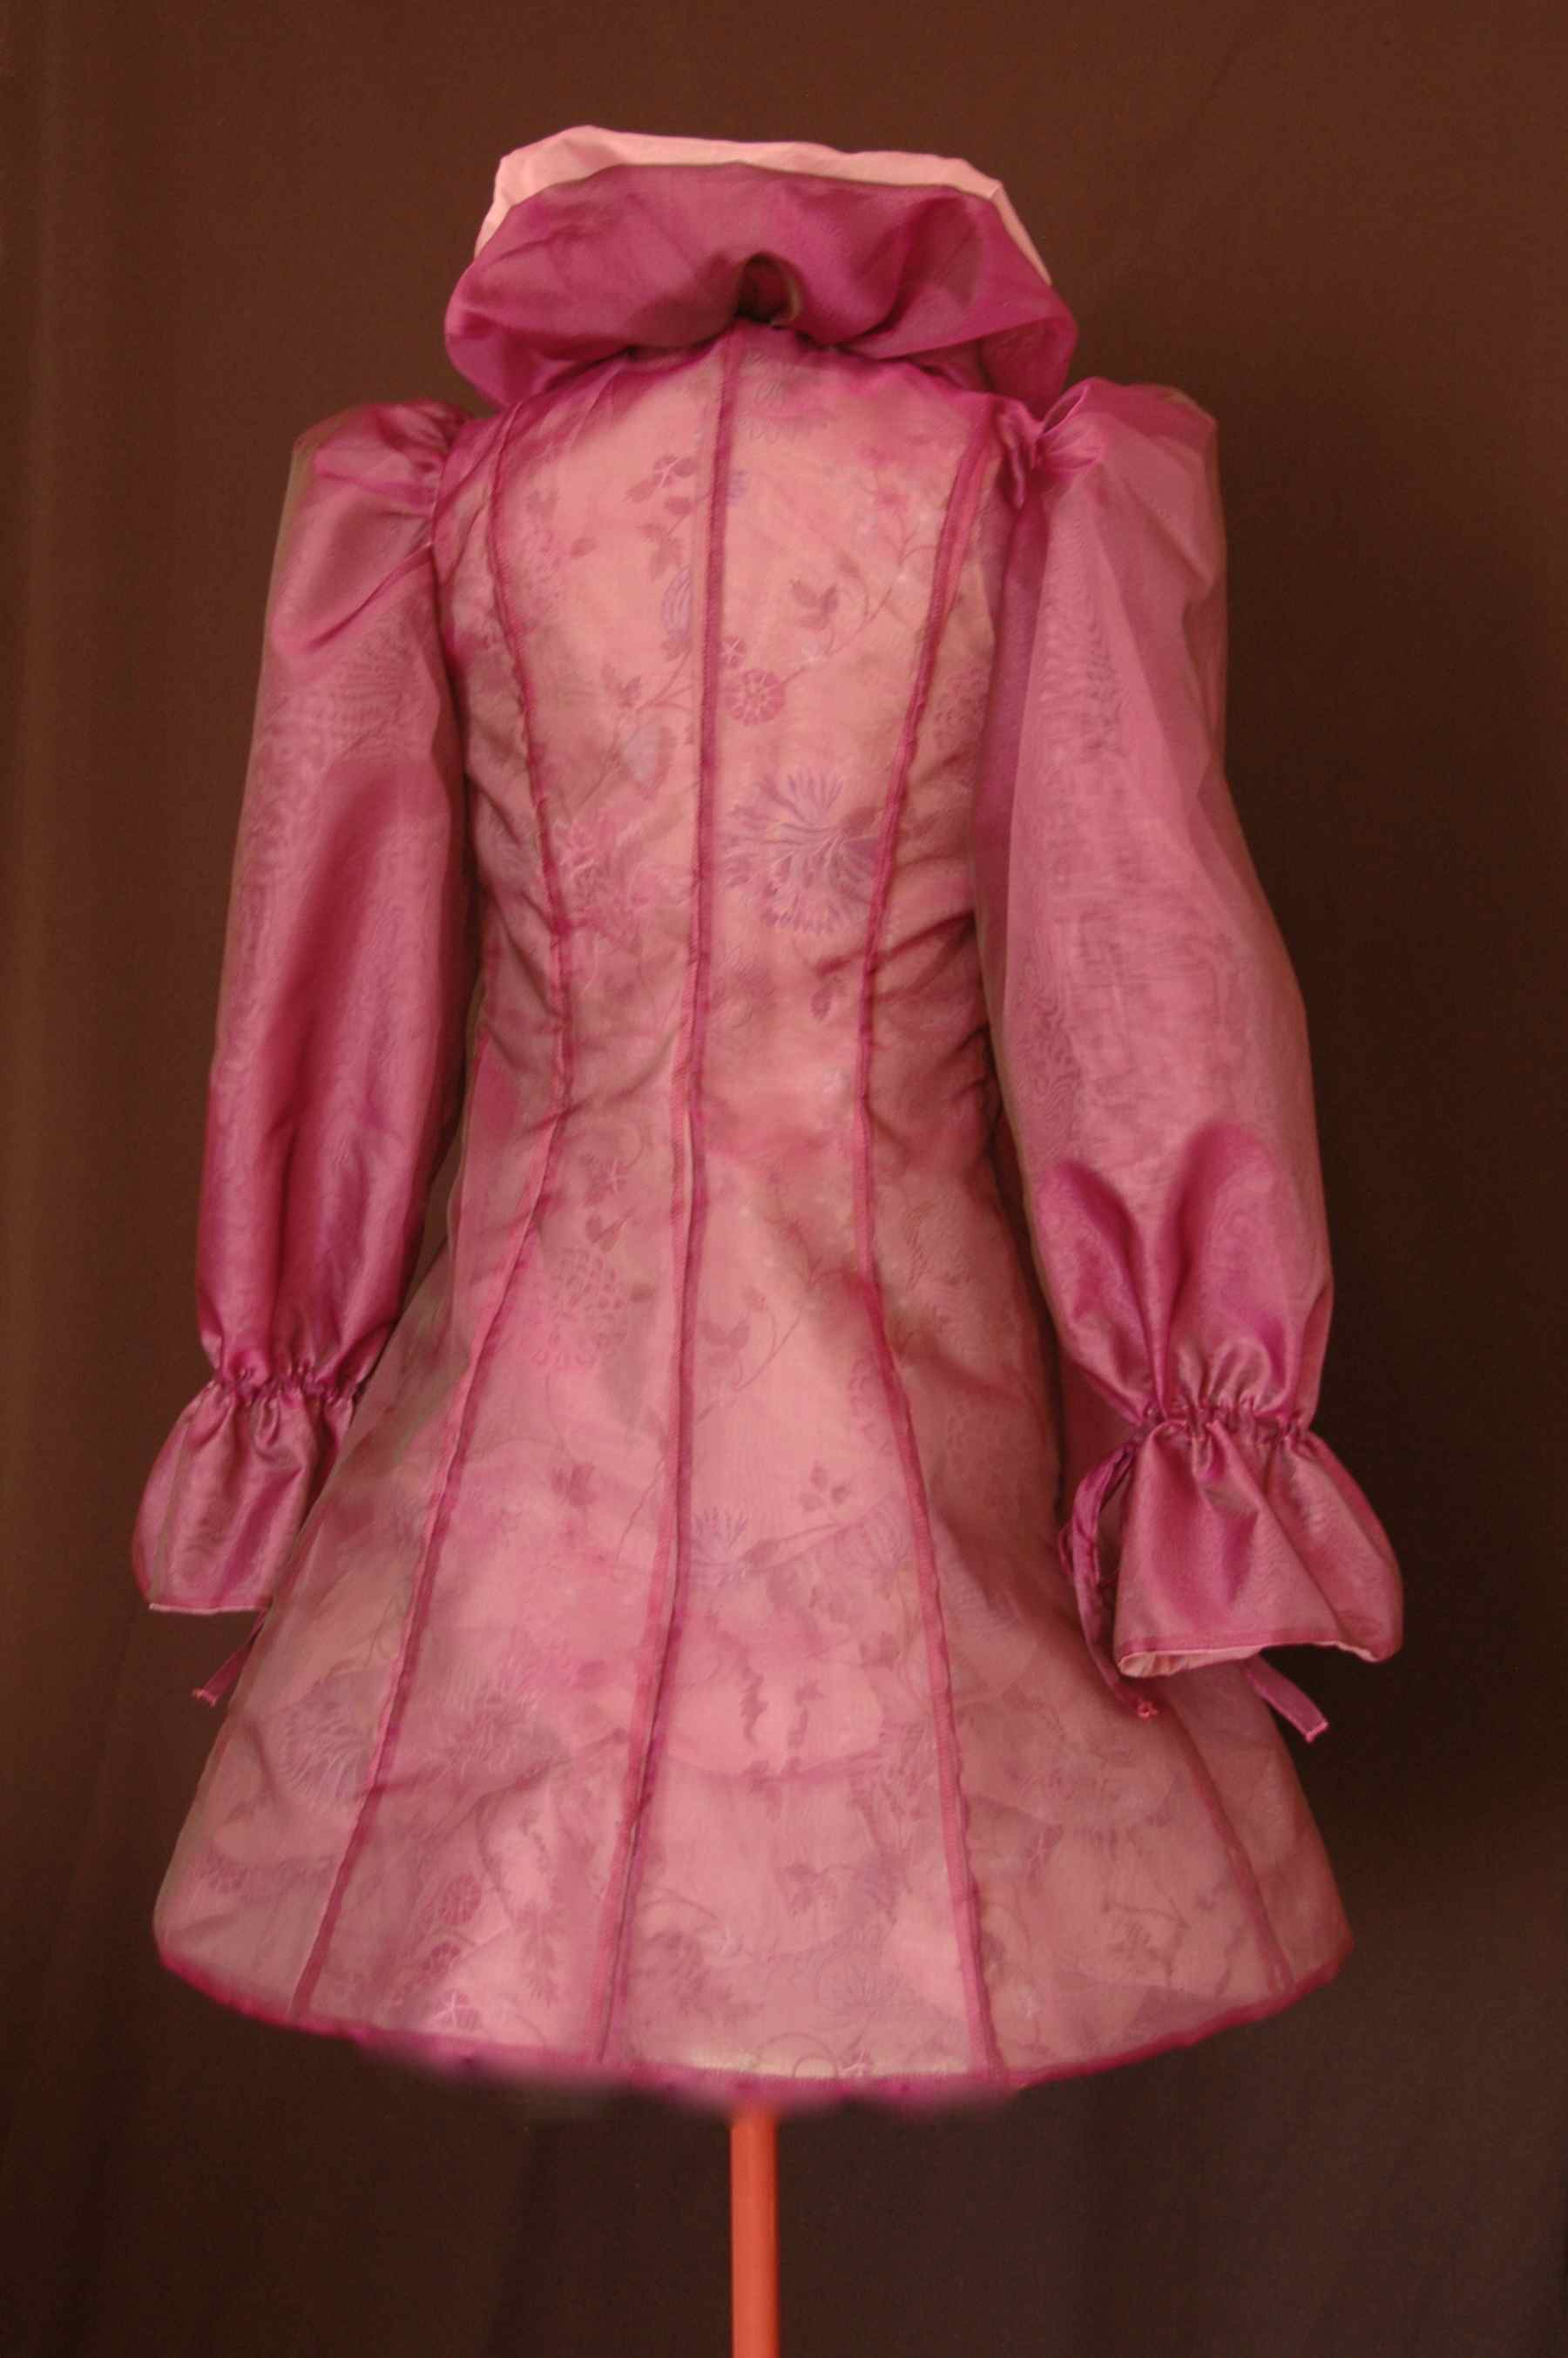 Manteau de cocktail en organza de soie réversible